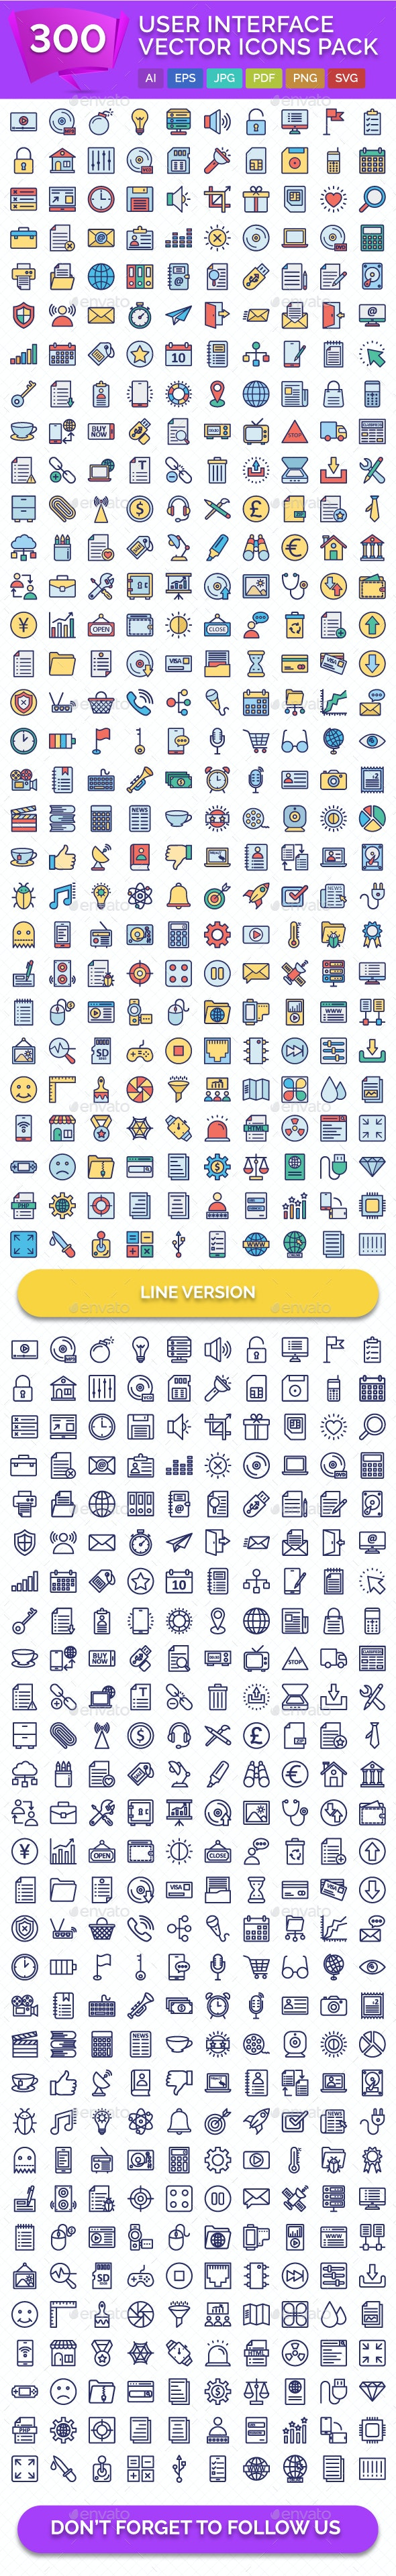 300 User Interface Vector Icons Pack - Icons